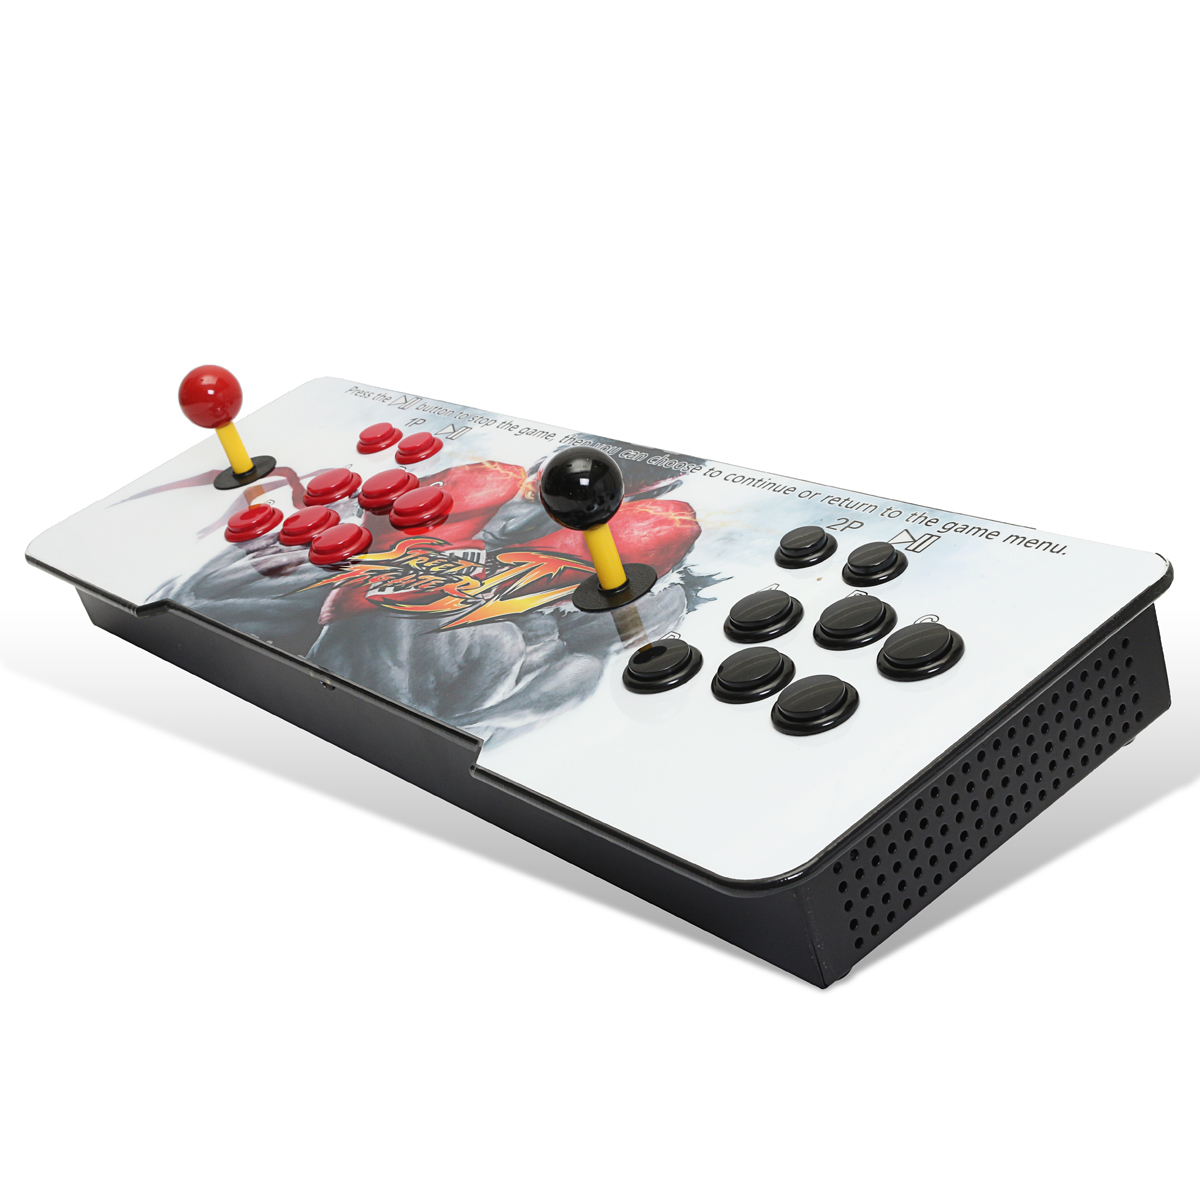 PandoraBox 5S Plus 999 in 1 Dual Player Double Joystick Arcade Game Console with Push Button